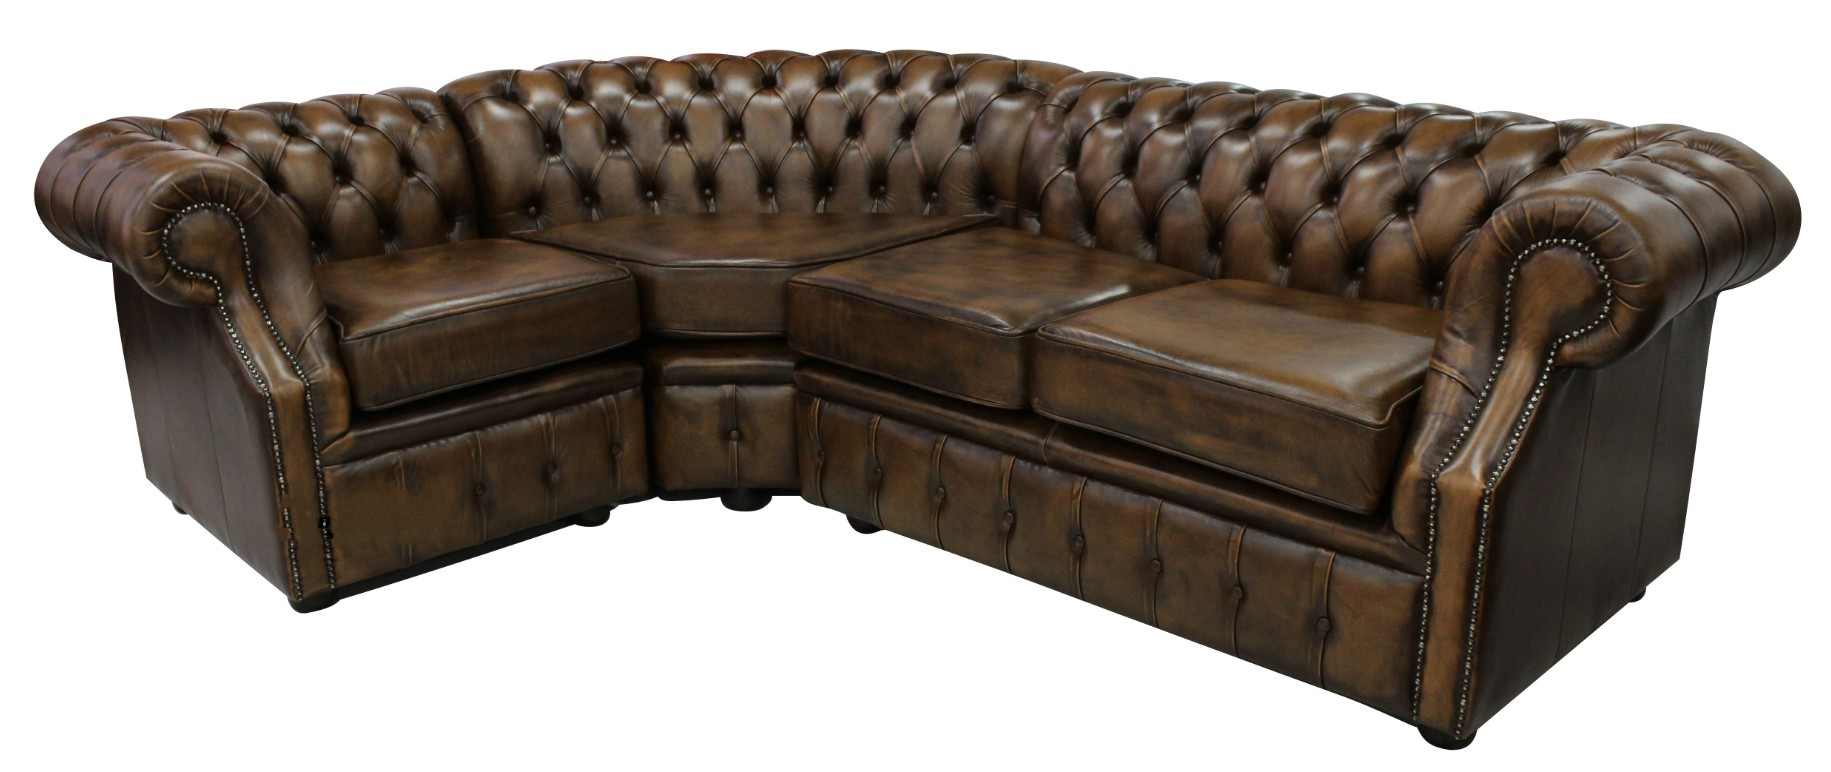 Chesterfield Graham Corner Sofa Unit 2 C 1 Antique